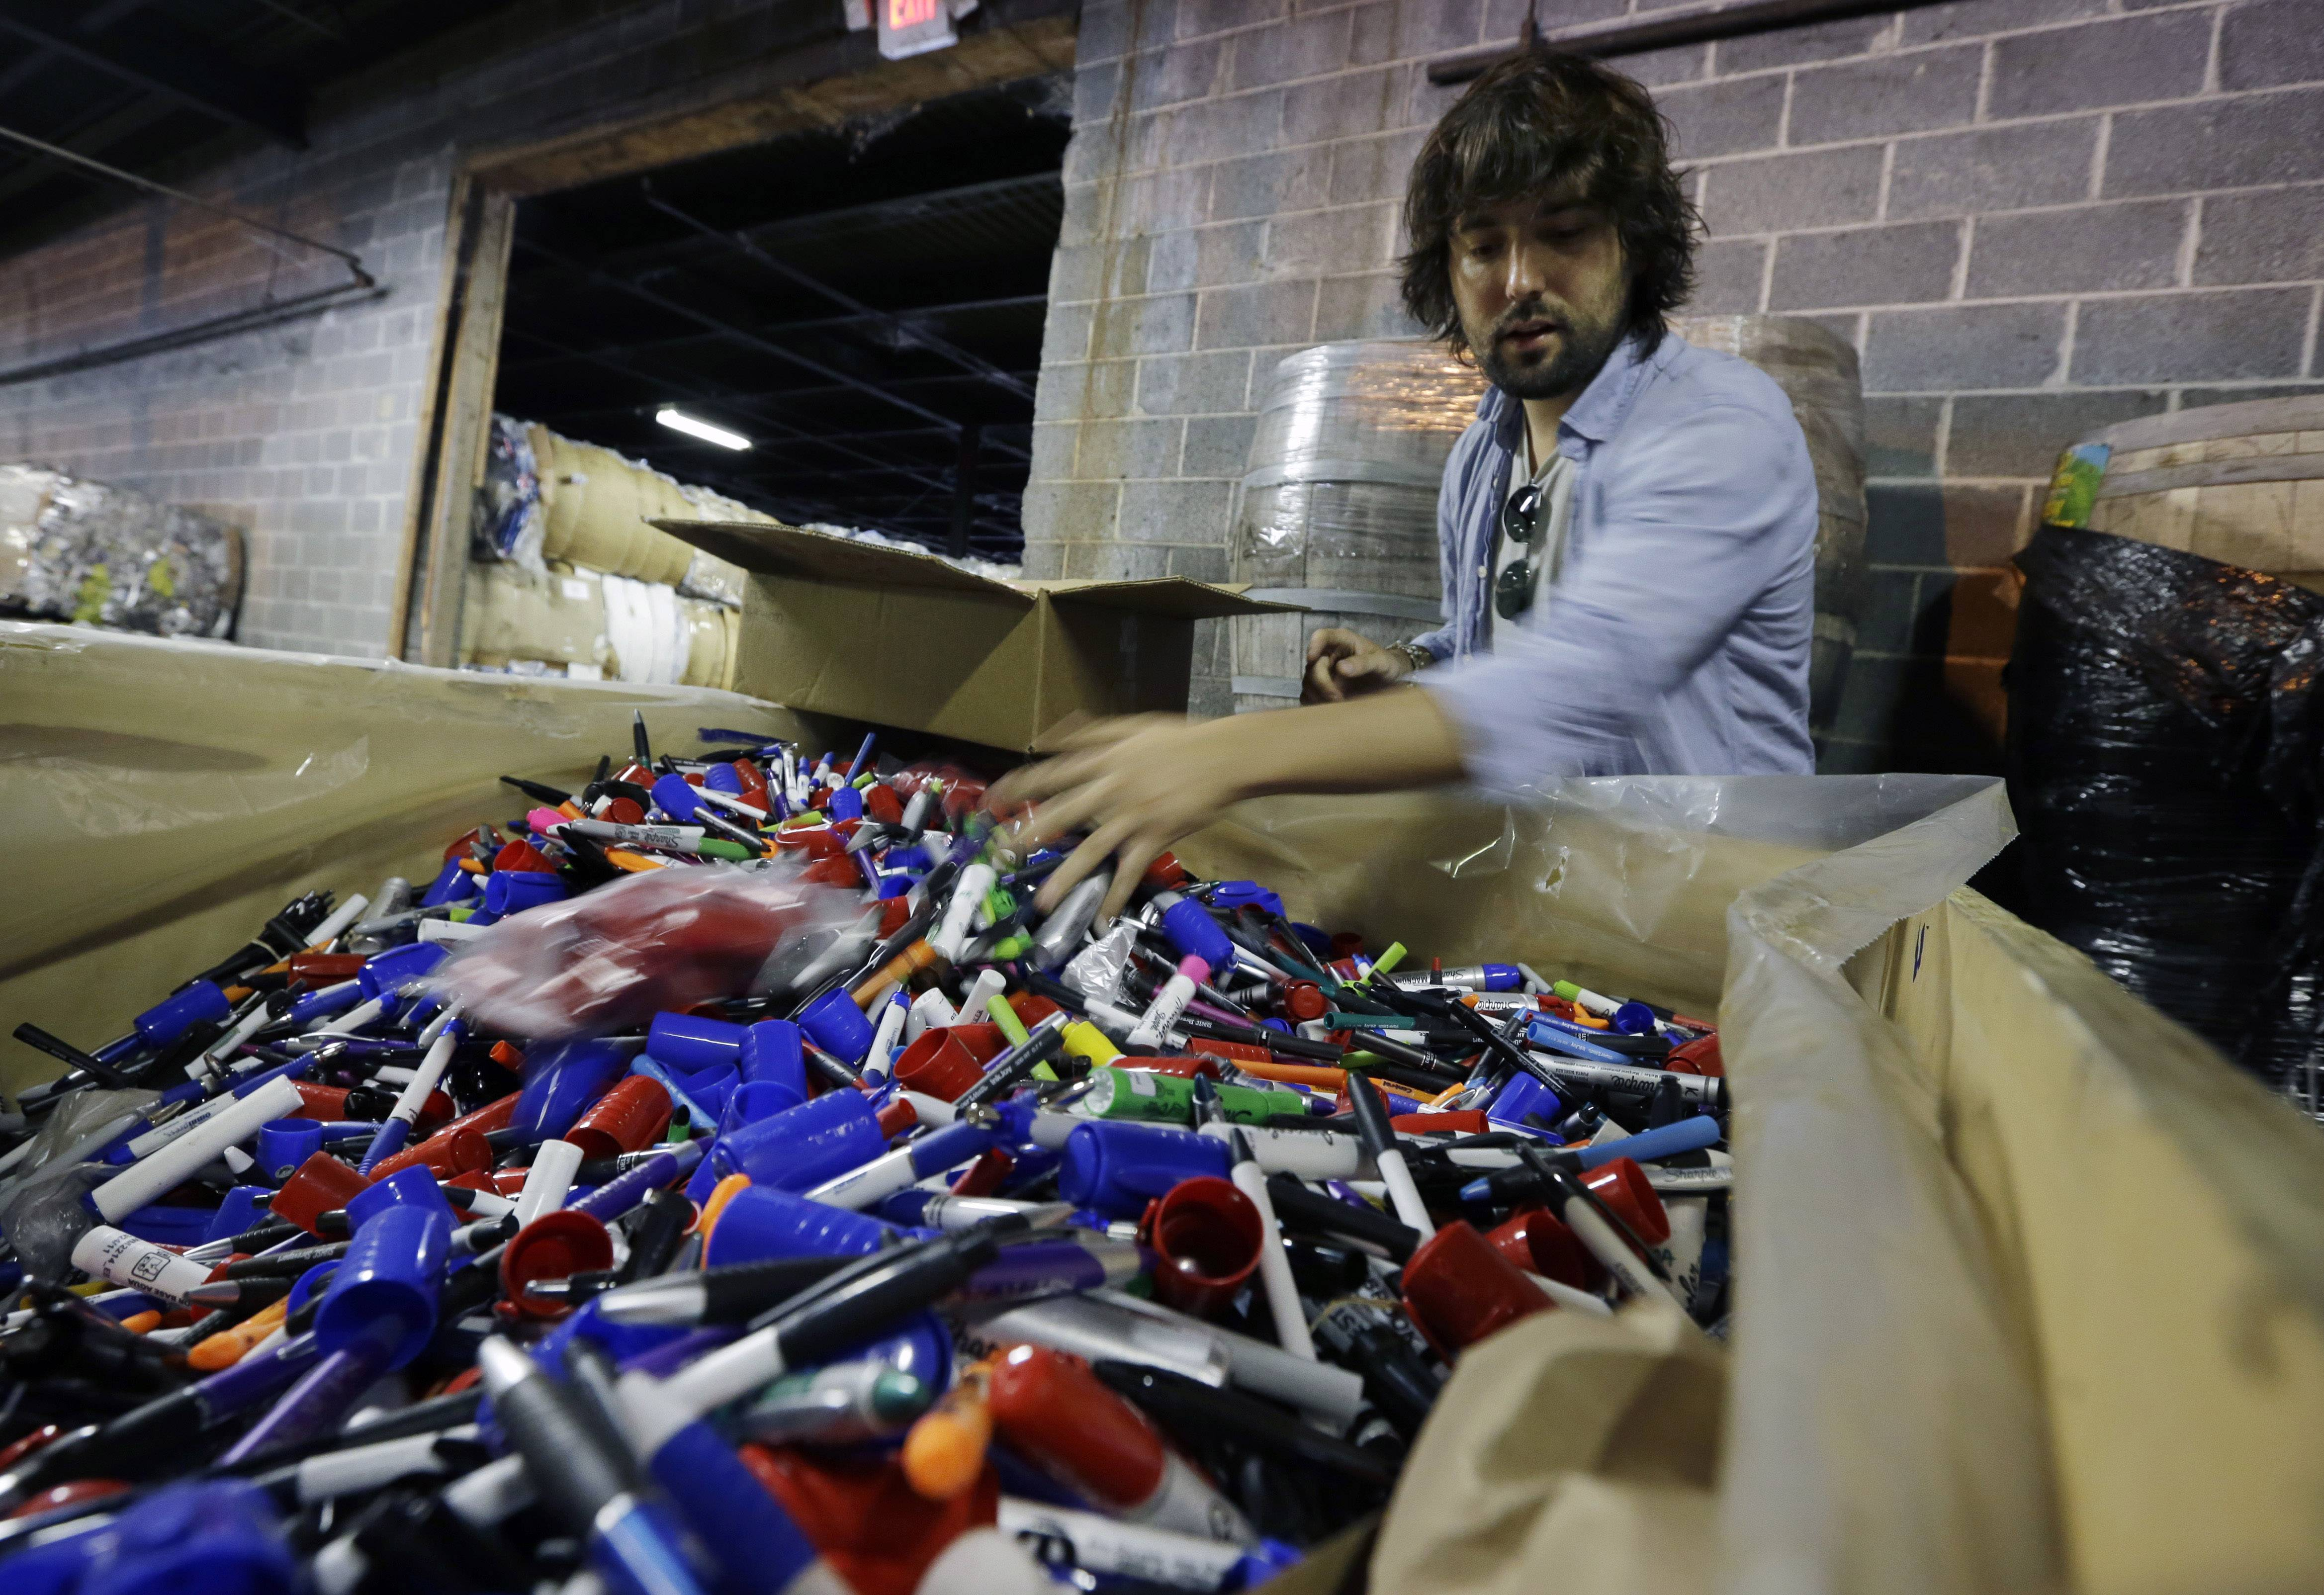 TerraCycle Inc. founder Tom Szaky stands in a warehouse, as he looks through a large box of marker pens Tuesday, Aug. 5, 2014, in Trenton, N.J. Founded in 2001 by then-20-year-old Princeton student Szaky, TerraCycle works to collect and transform a range of hard-to-recyle items, from potato chip bags to cigarette butts, into colorful consumer products. A new reality show launching Aug. 8 will focus on the New Jersey-based recycling company.